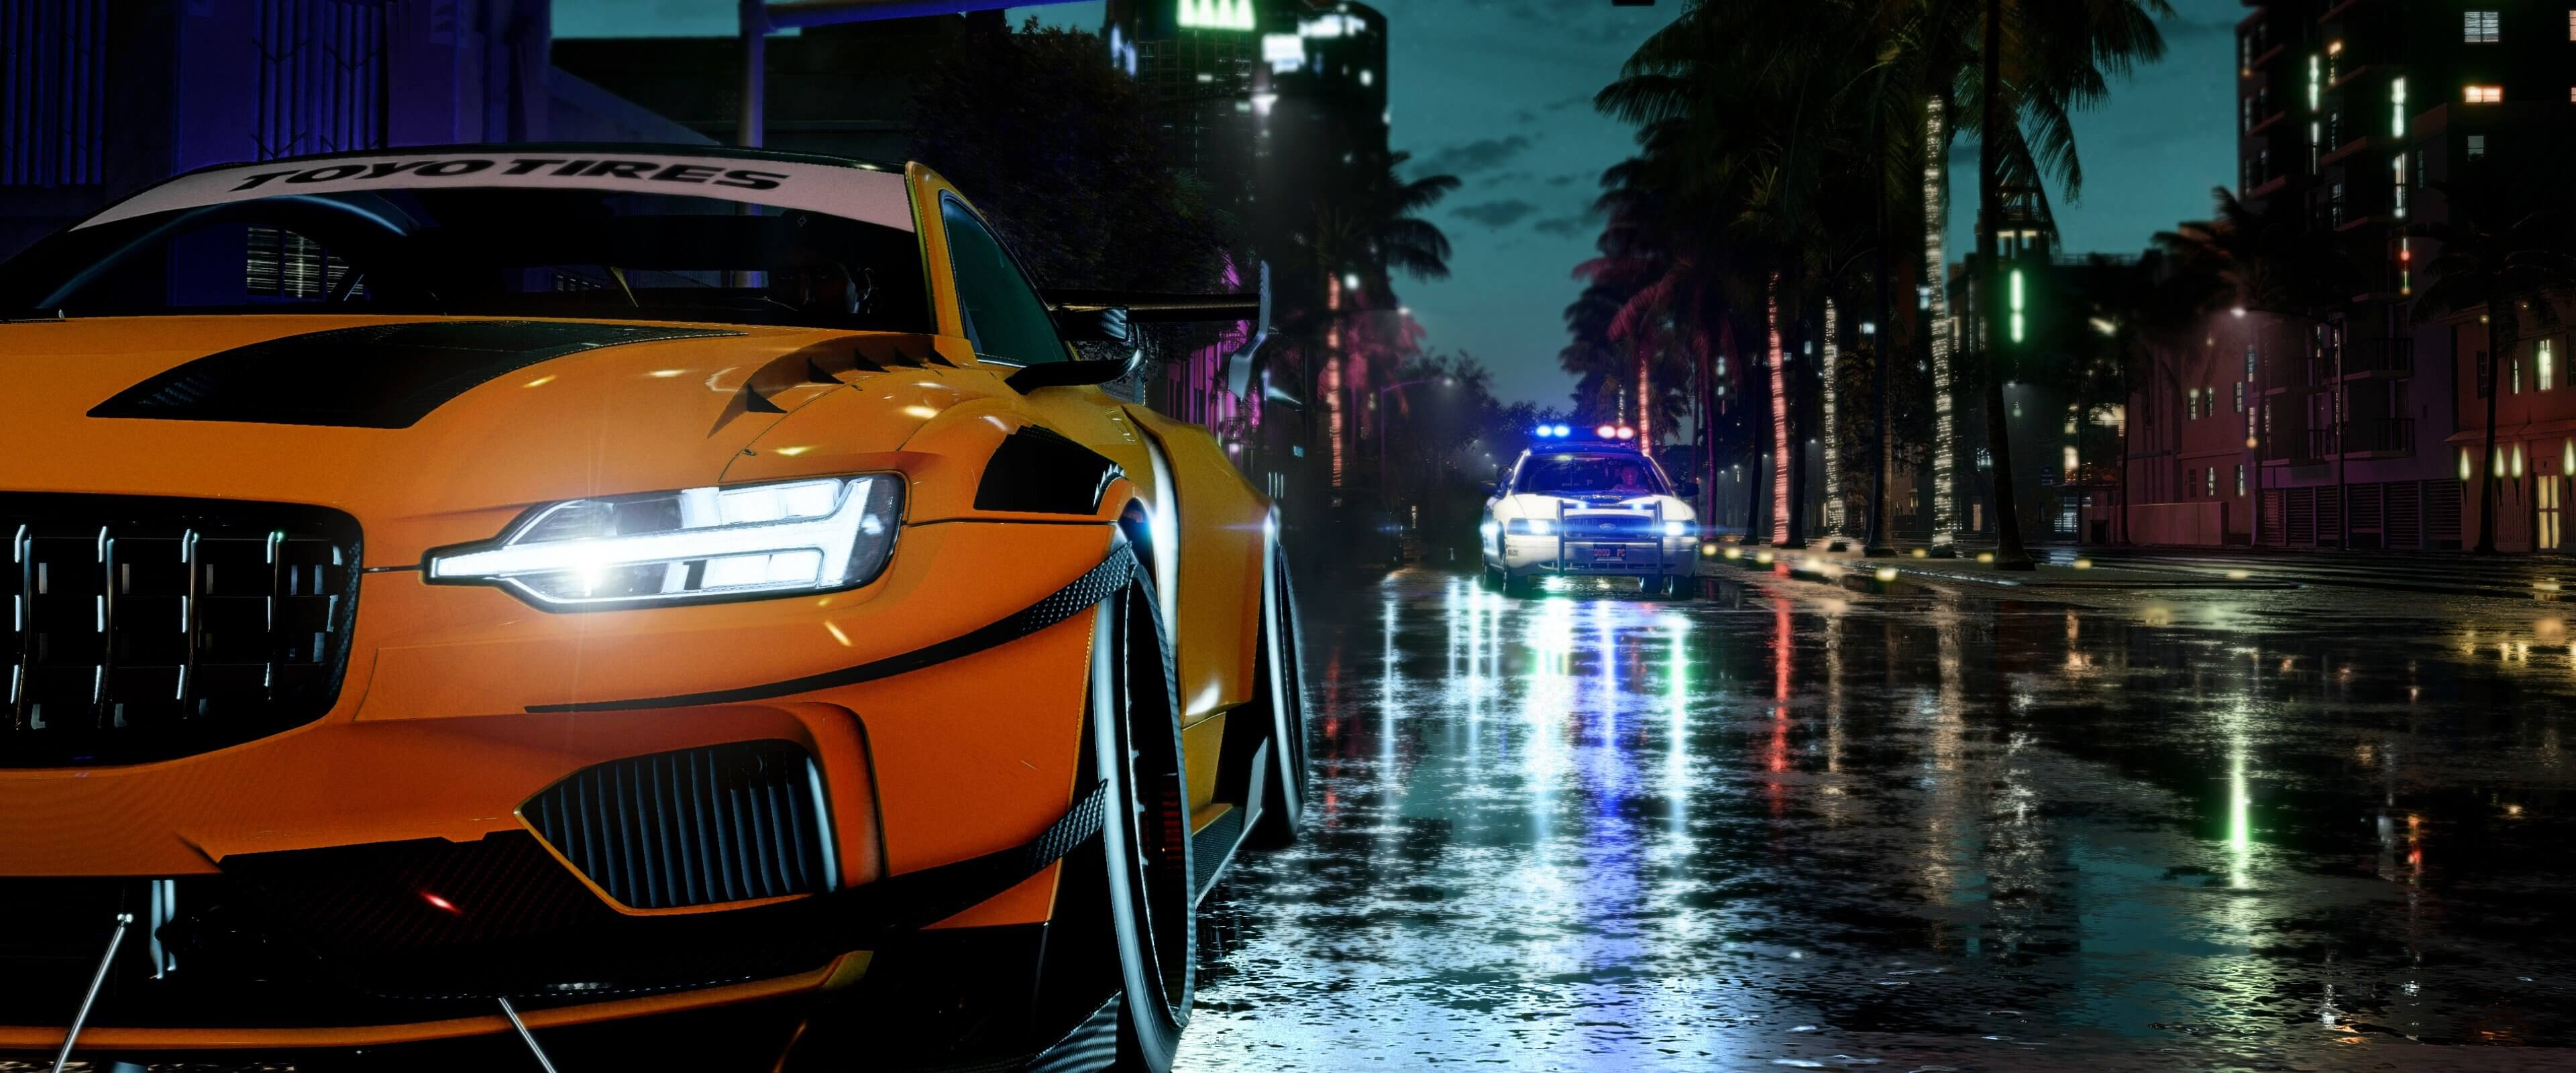 Will Need For Speed Heat Compare To Underground 2 Unboxed Reviews